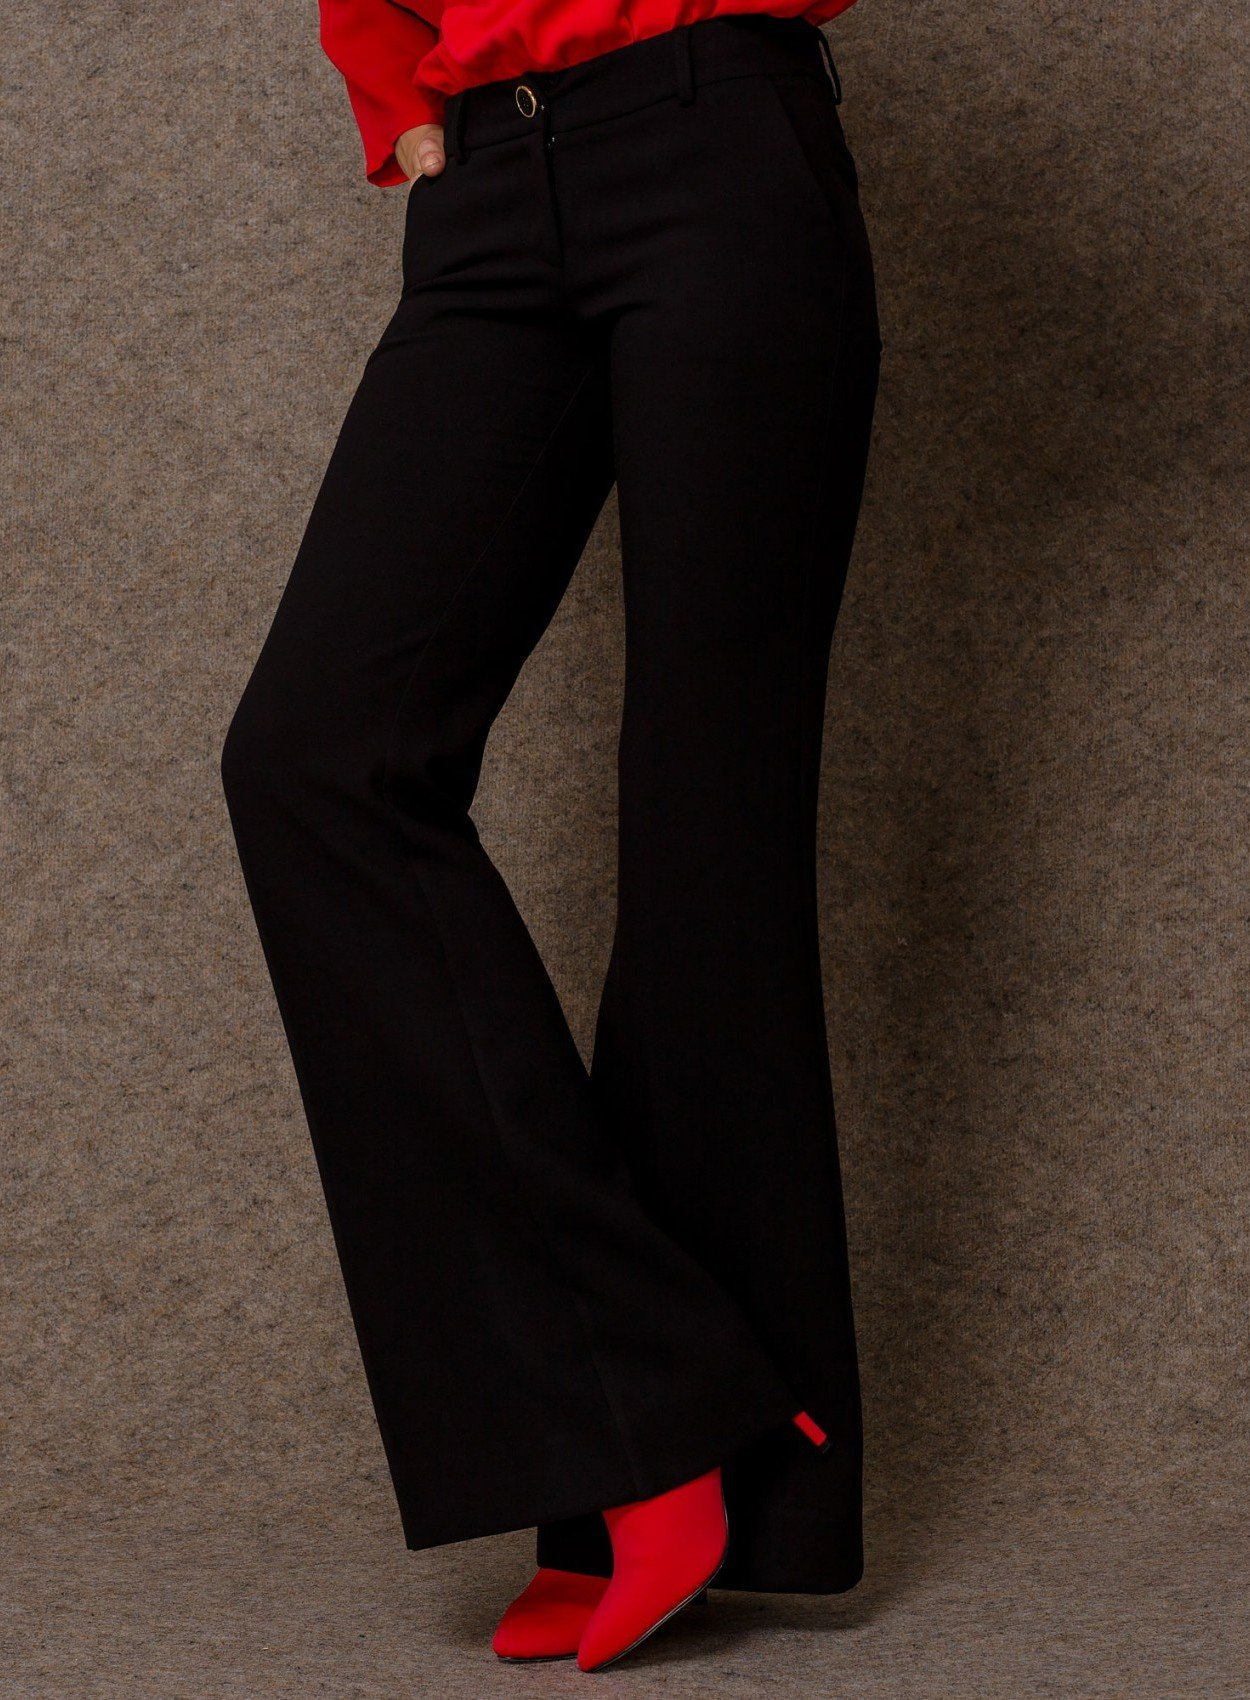 Crepe Wide Leg Trousers Black ACCTR28-5110